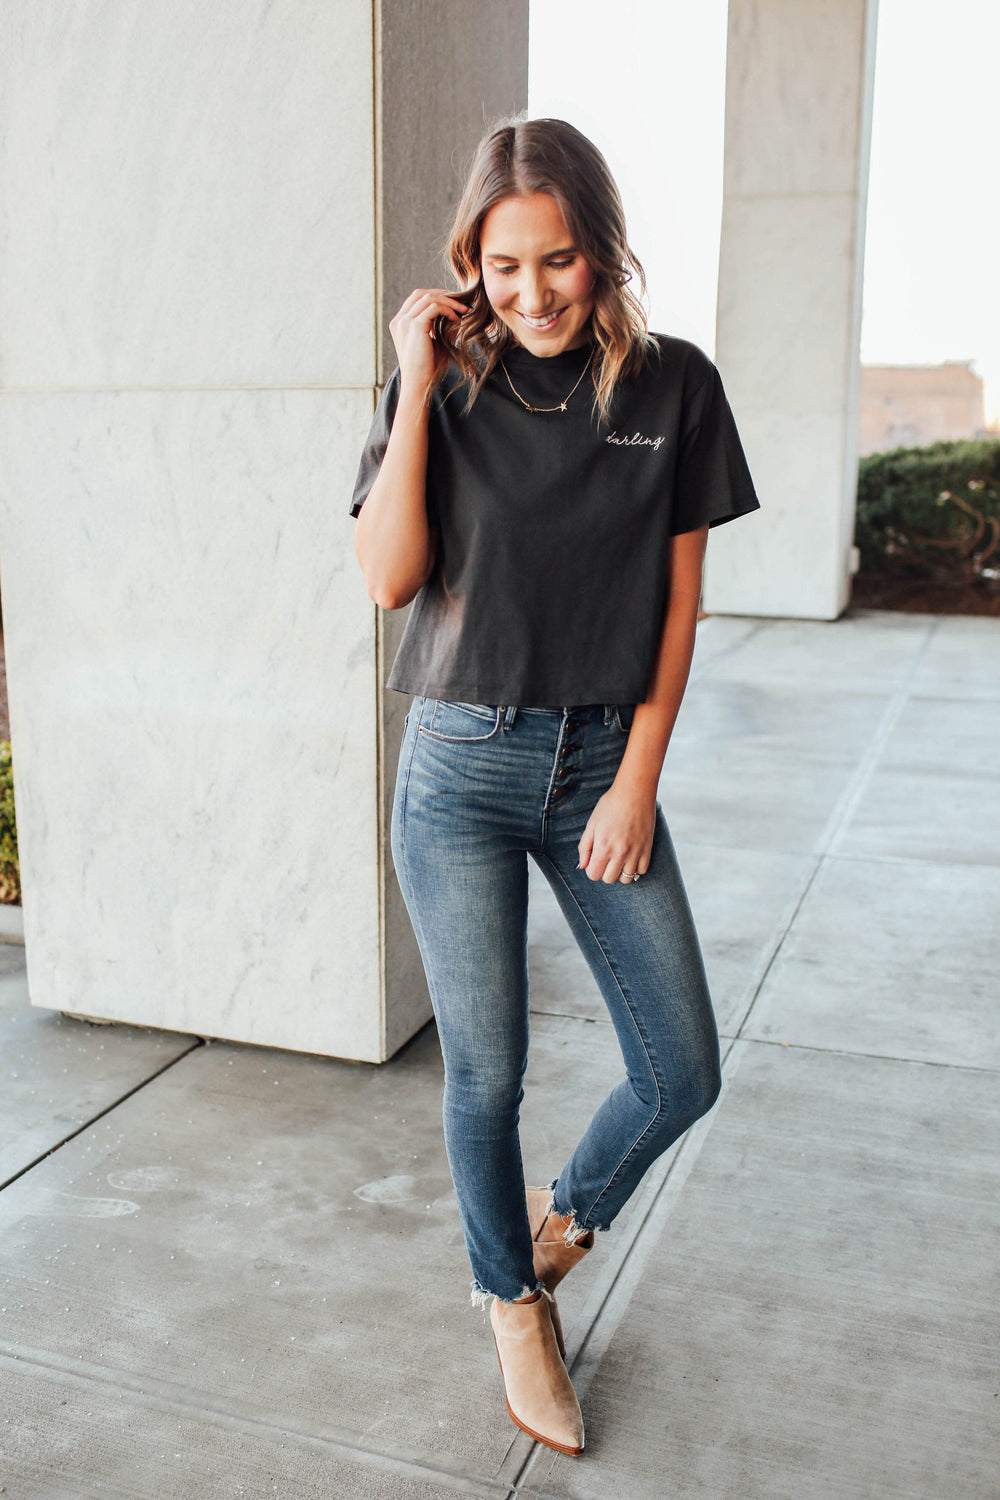 DARLING Embroidered Tee Inspired By Ashley from Twenties Girl Style